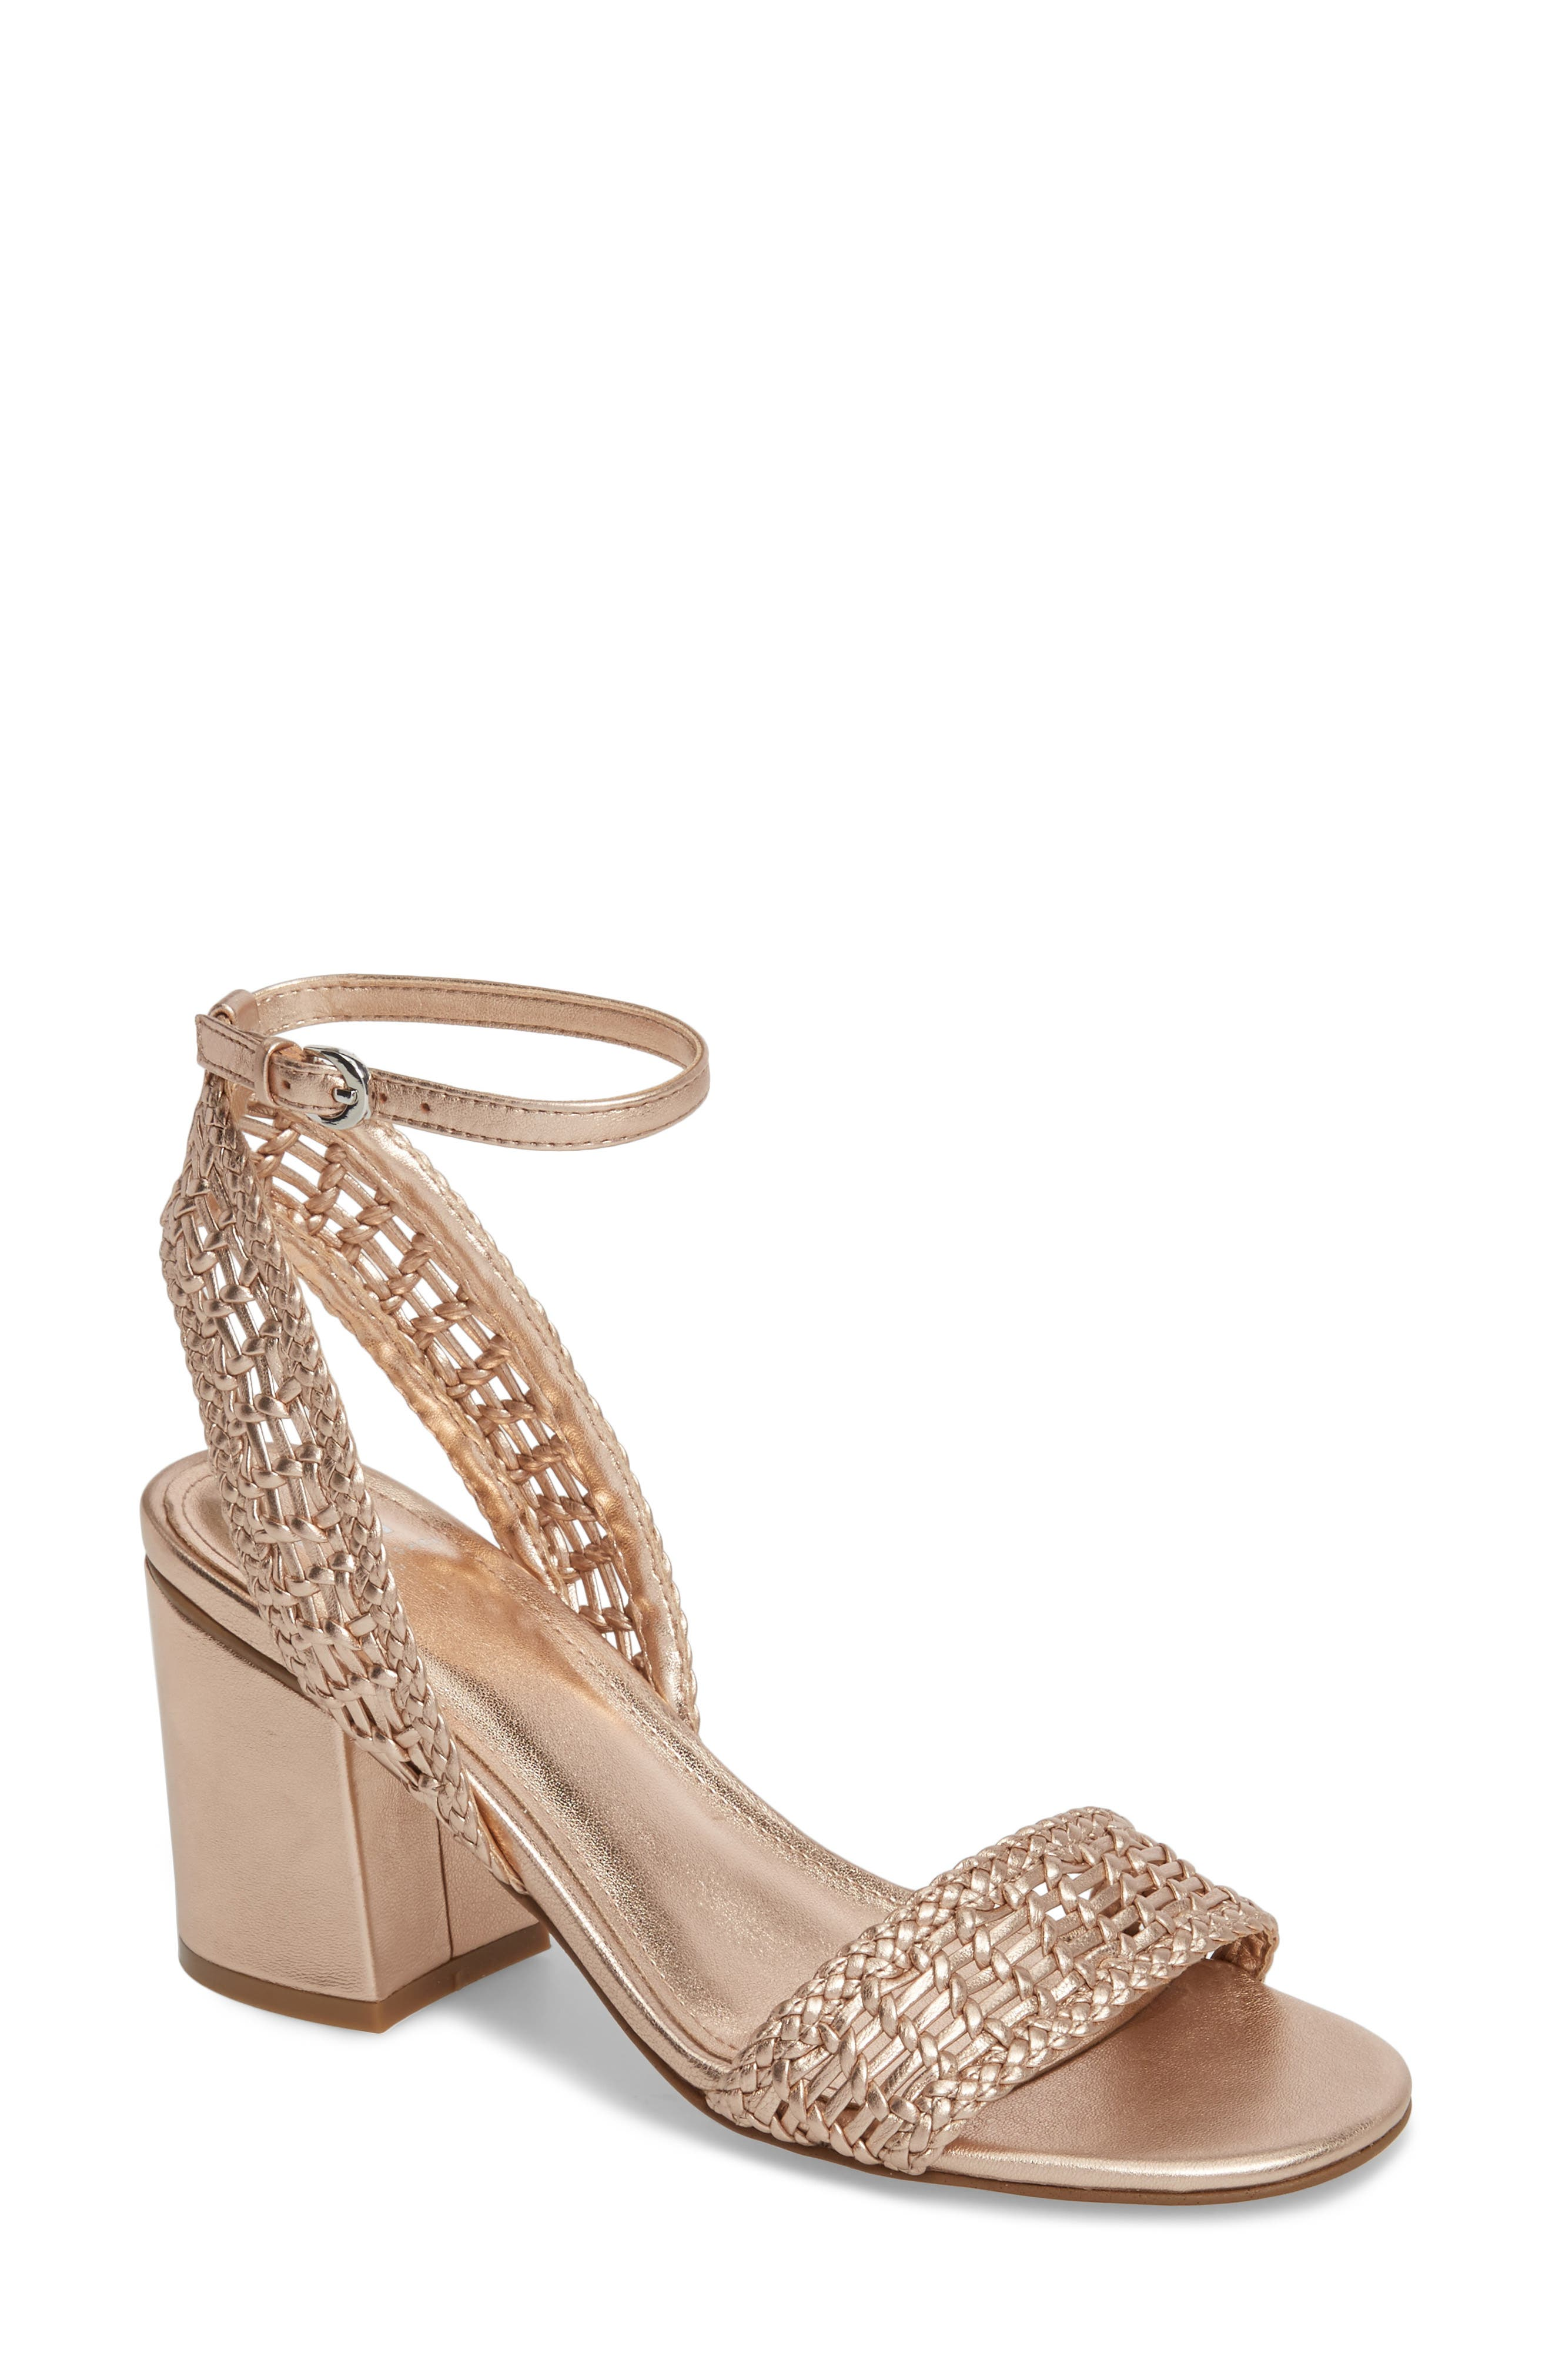 Alternate Image 1 Selected - Marc Fisher LTD Amere Ankle Strap Sandal (Women)